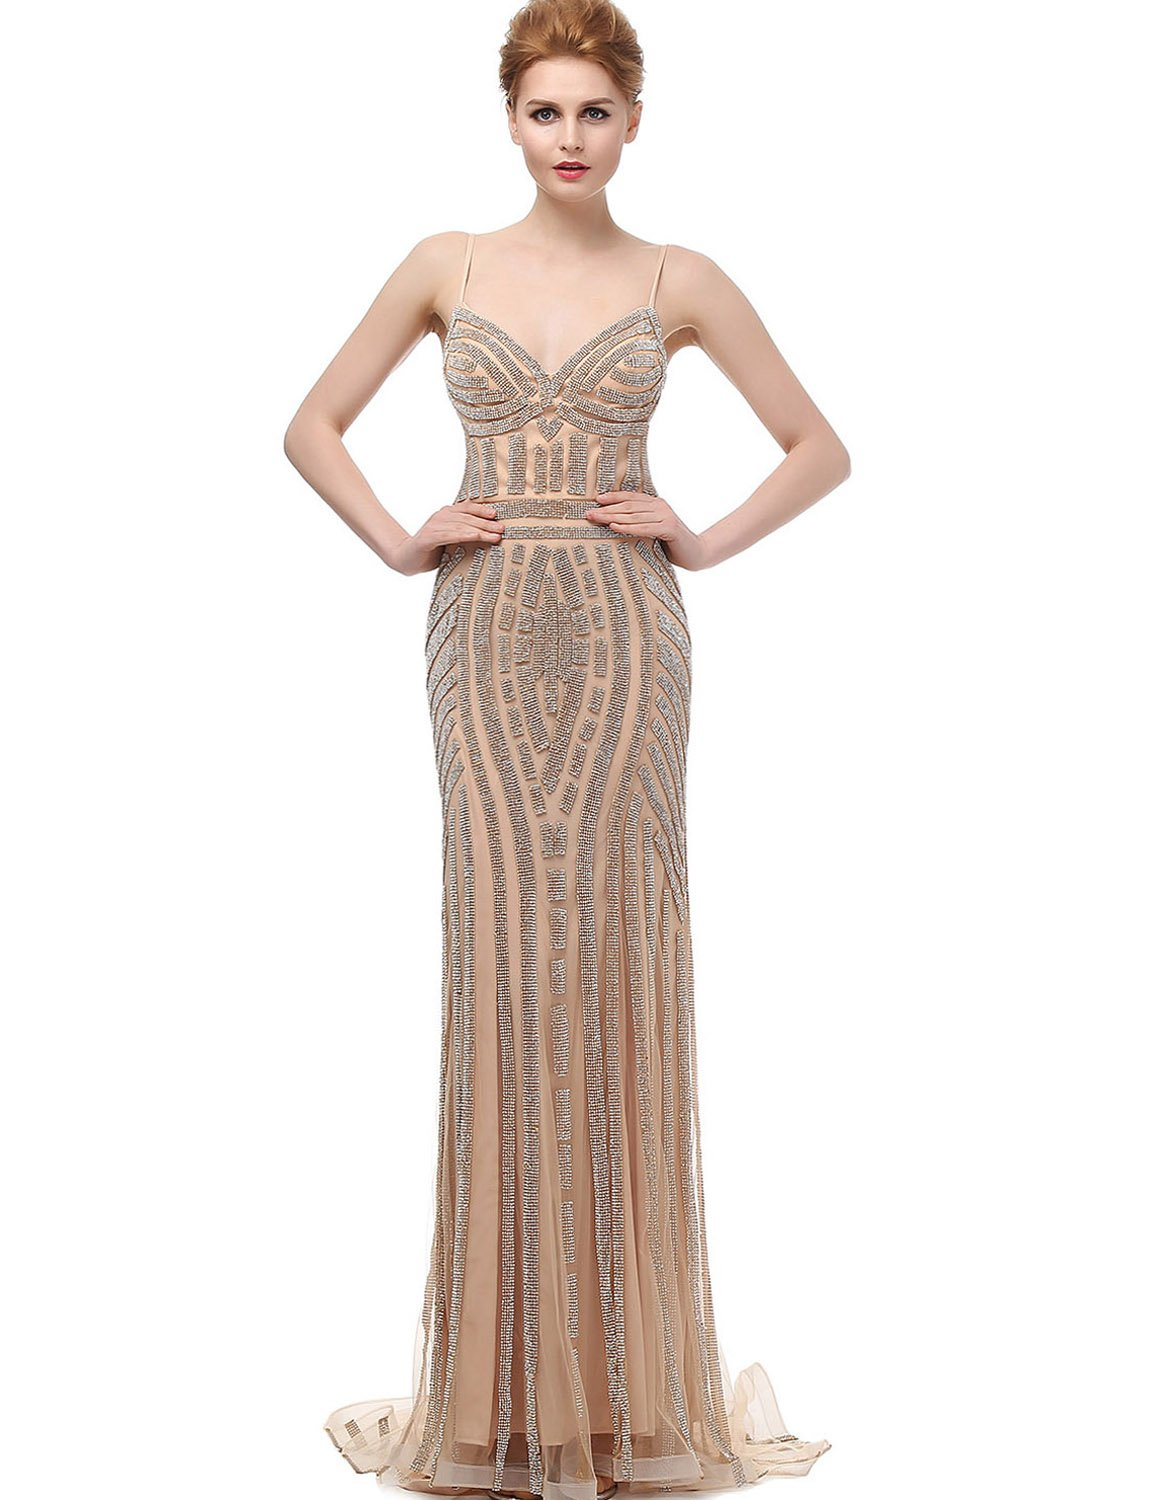 Sarahbridal Women's Beaded Crystal Evening Prom Dresses Mermaid Tulle Ball Gown Champagne US4